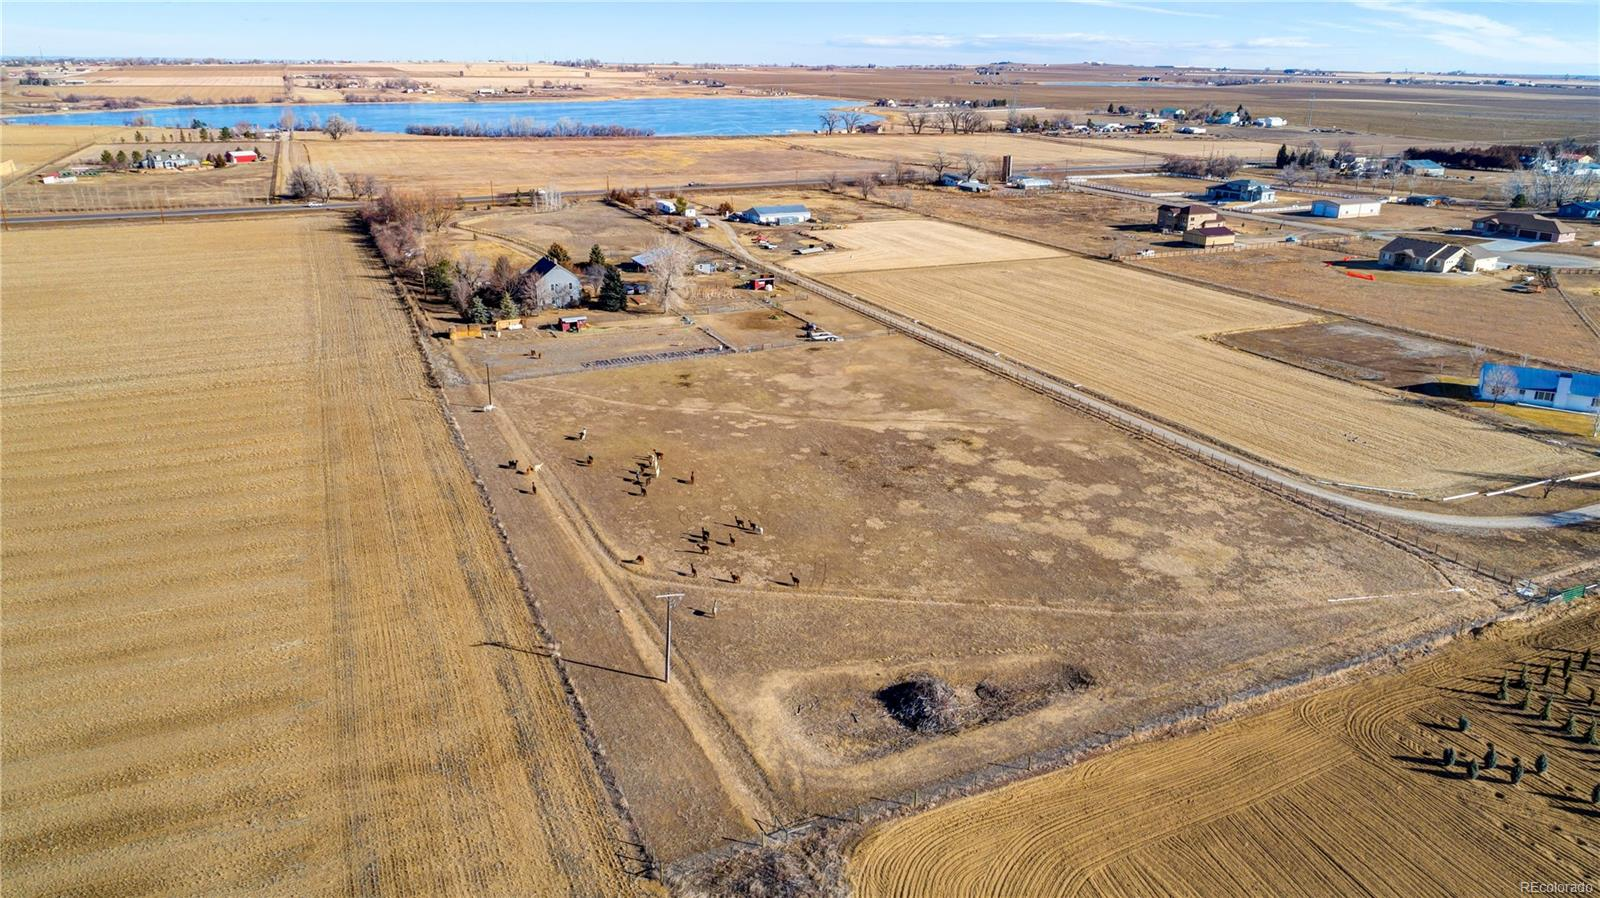 548 E State Highway 56 A, Berthoud, CO 80513 - Berthoud, CO real estate listing